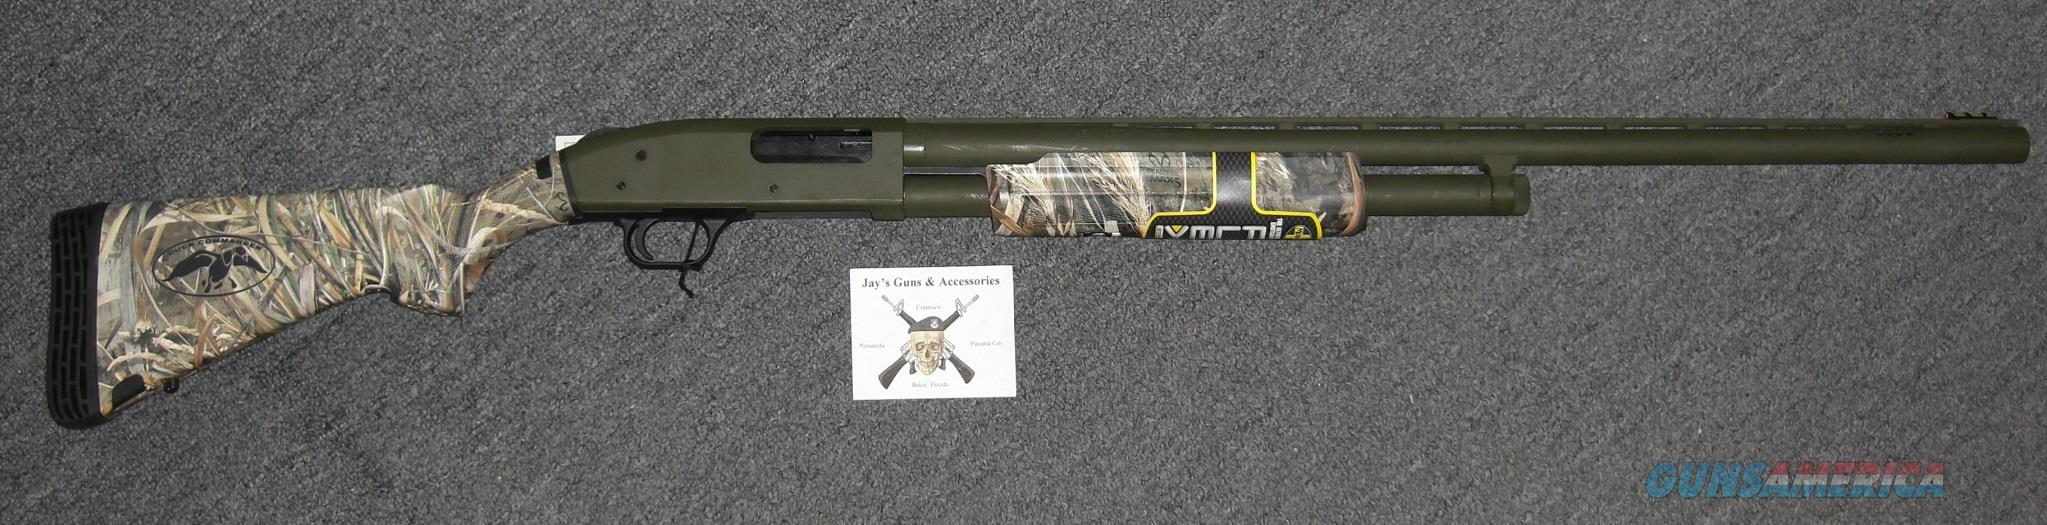 Mossberg 500 Flex Duck Commander (85006)  Guns > Shotguns > Mossberg Shotguns > Pump > Sporting